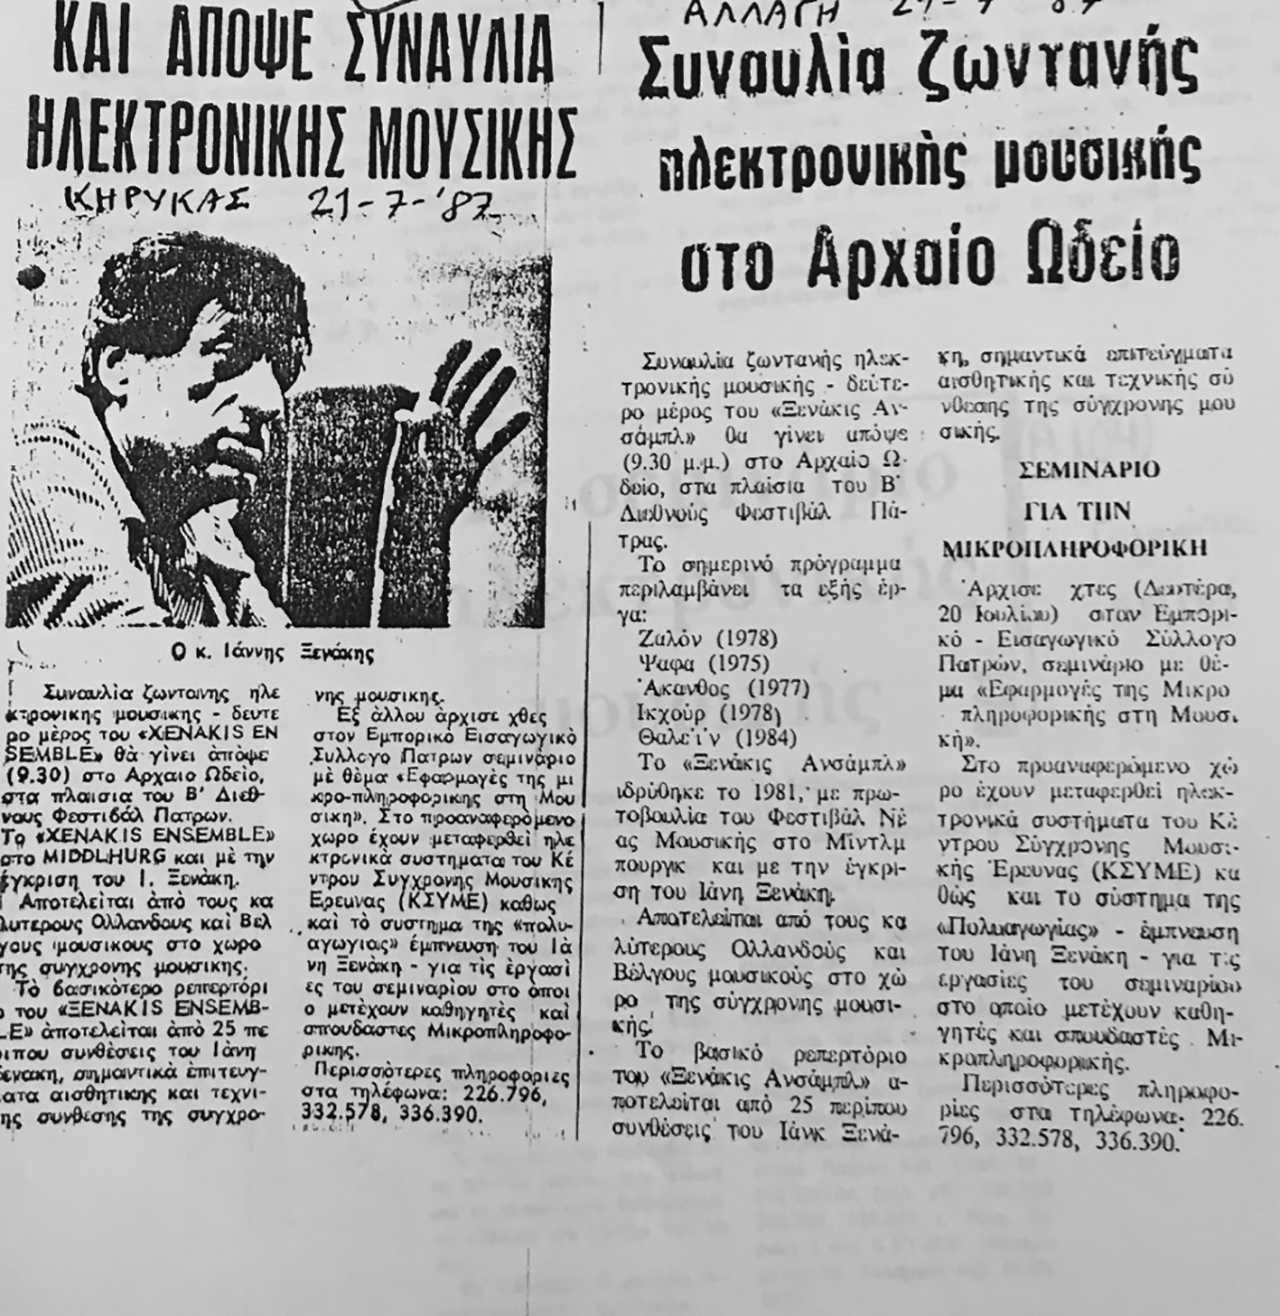 News clip on the presence of IX in Patra's International Festival, the Xenakis Ensemble and the activities of KSYME during the festival, Jul. 1987